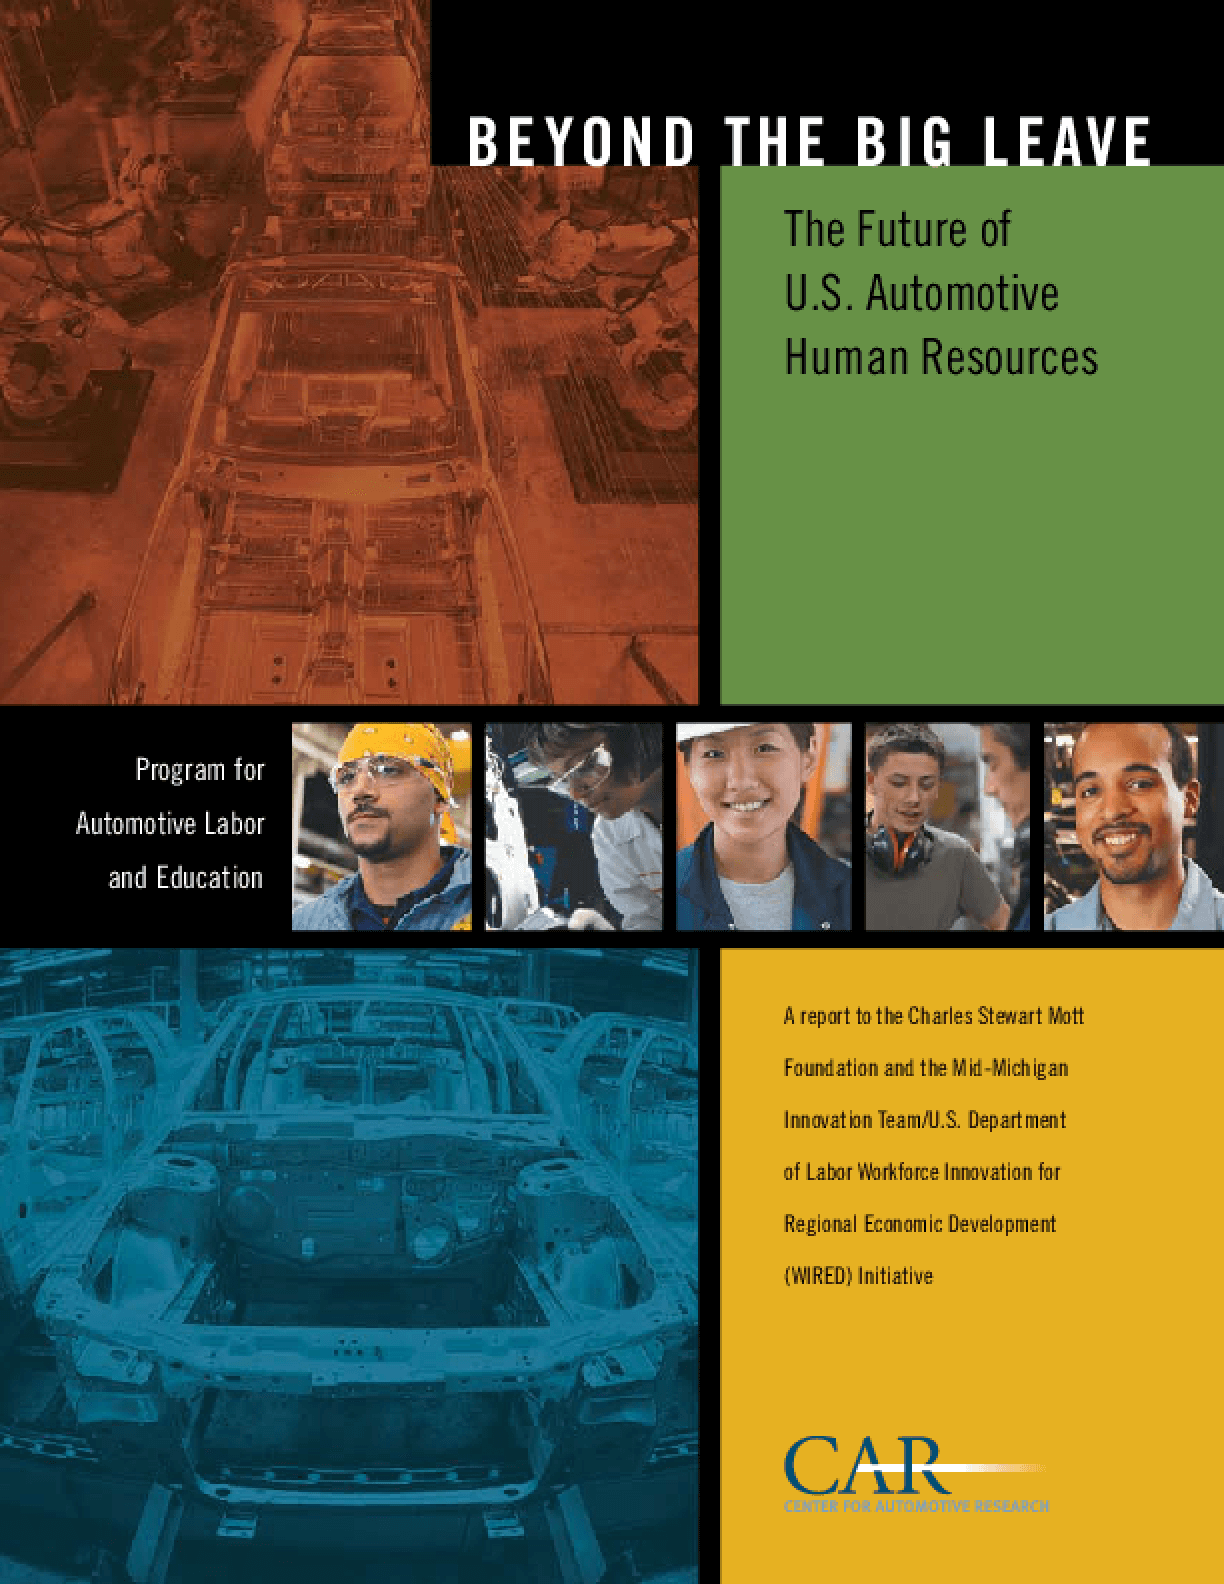 Beyond the Big Leave: The Future of U.S. Automotive Human Resources